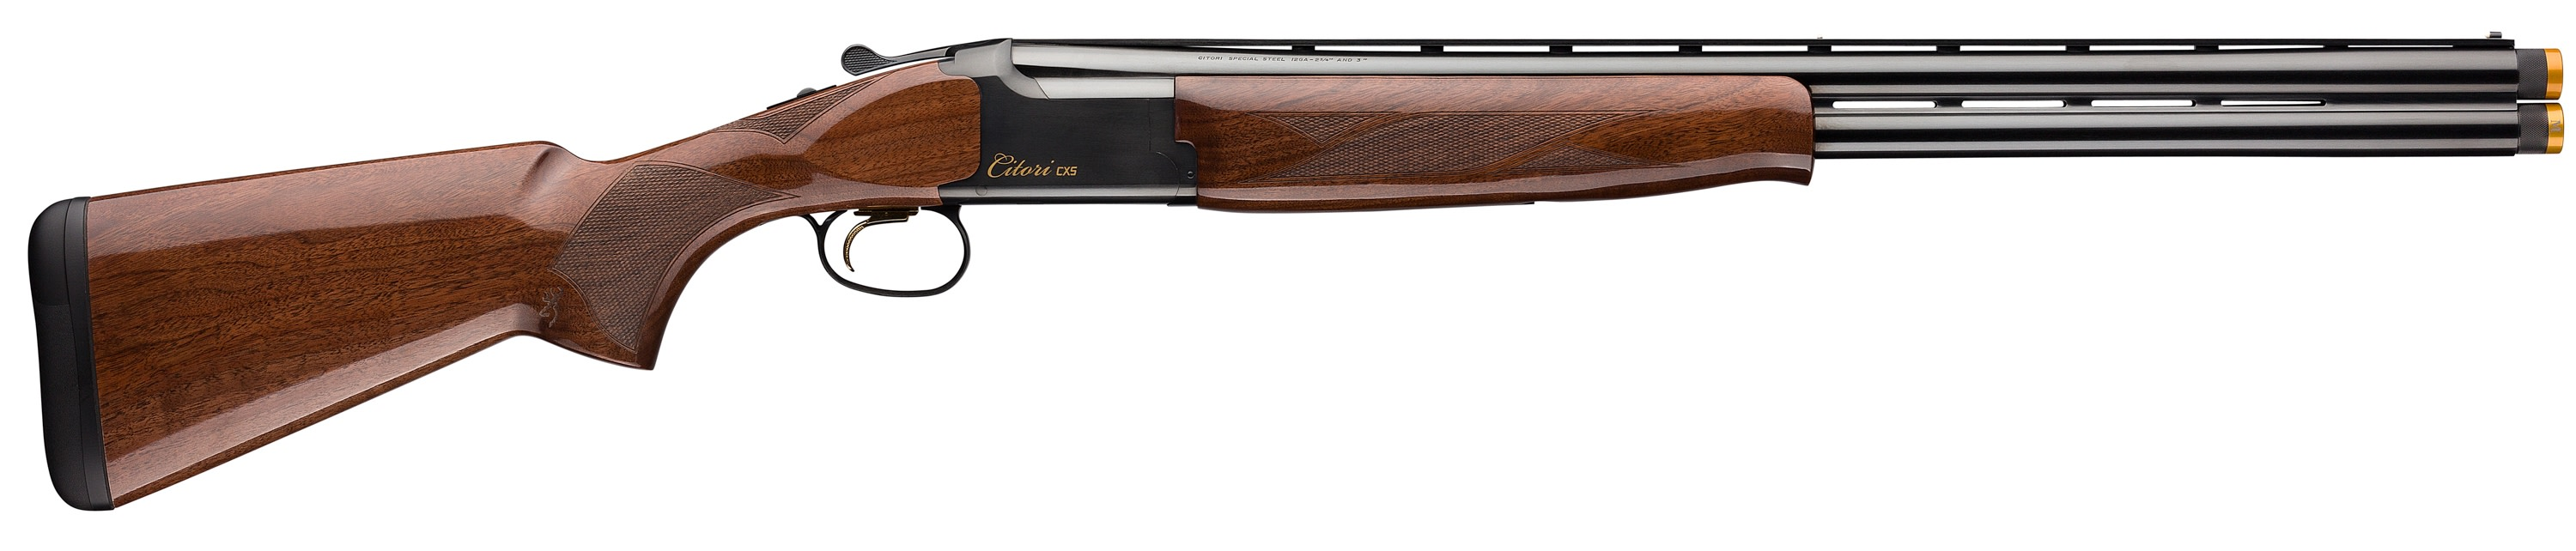 Browning Citori CXS Micro Over/Under 3'' 12 Gauge 26'' Blued Steel - American Walnut